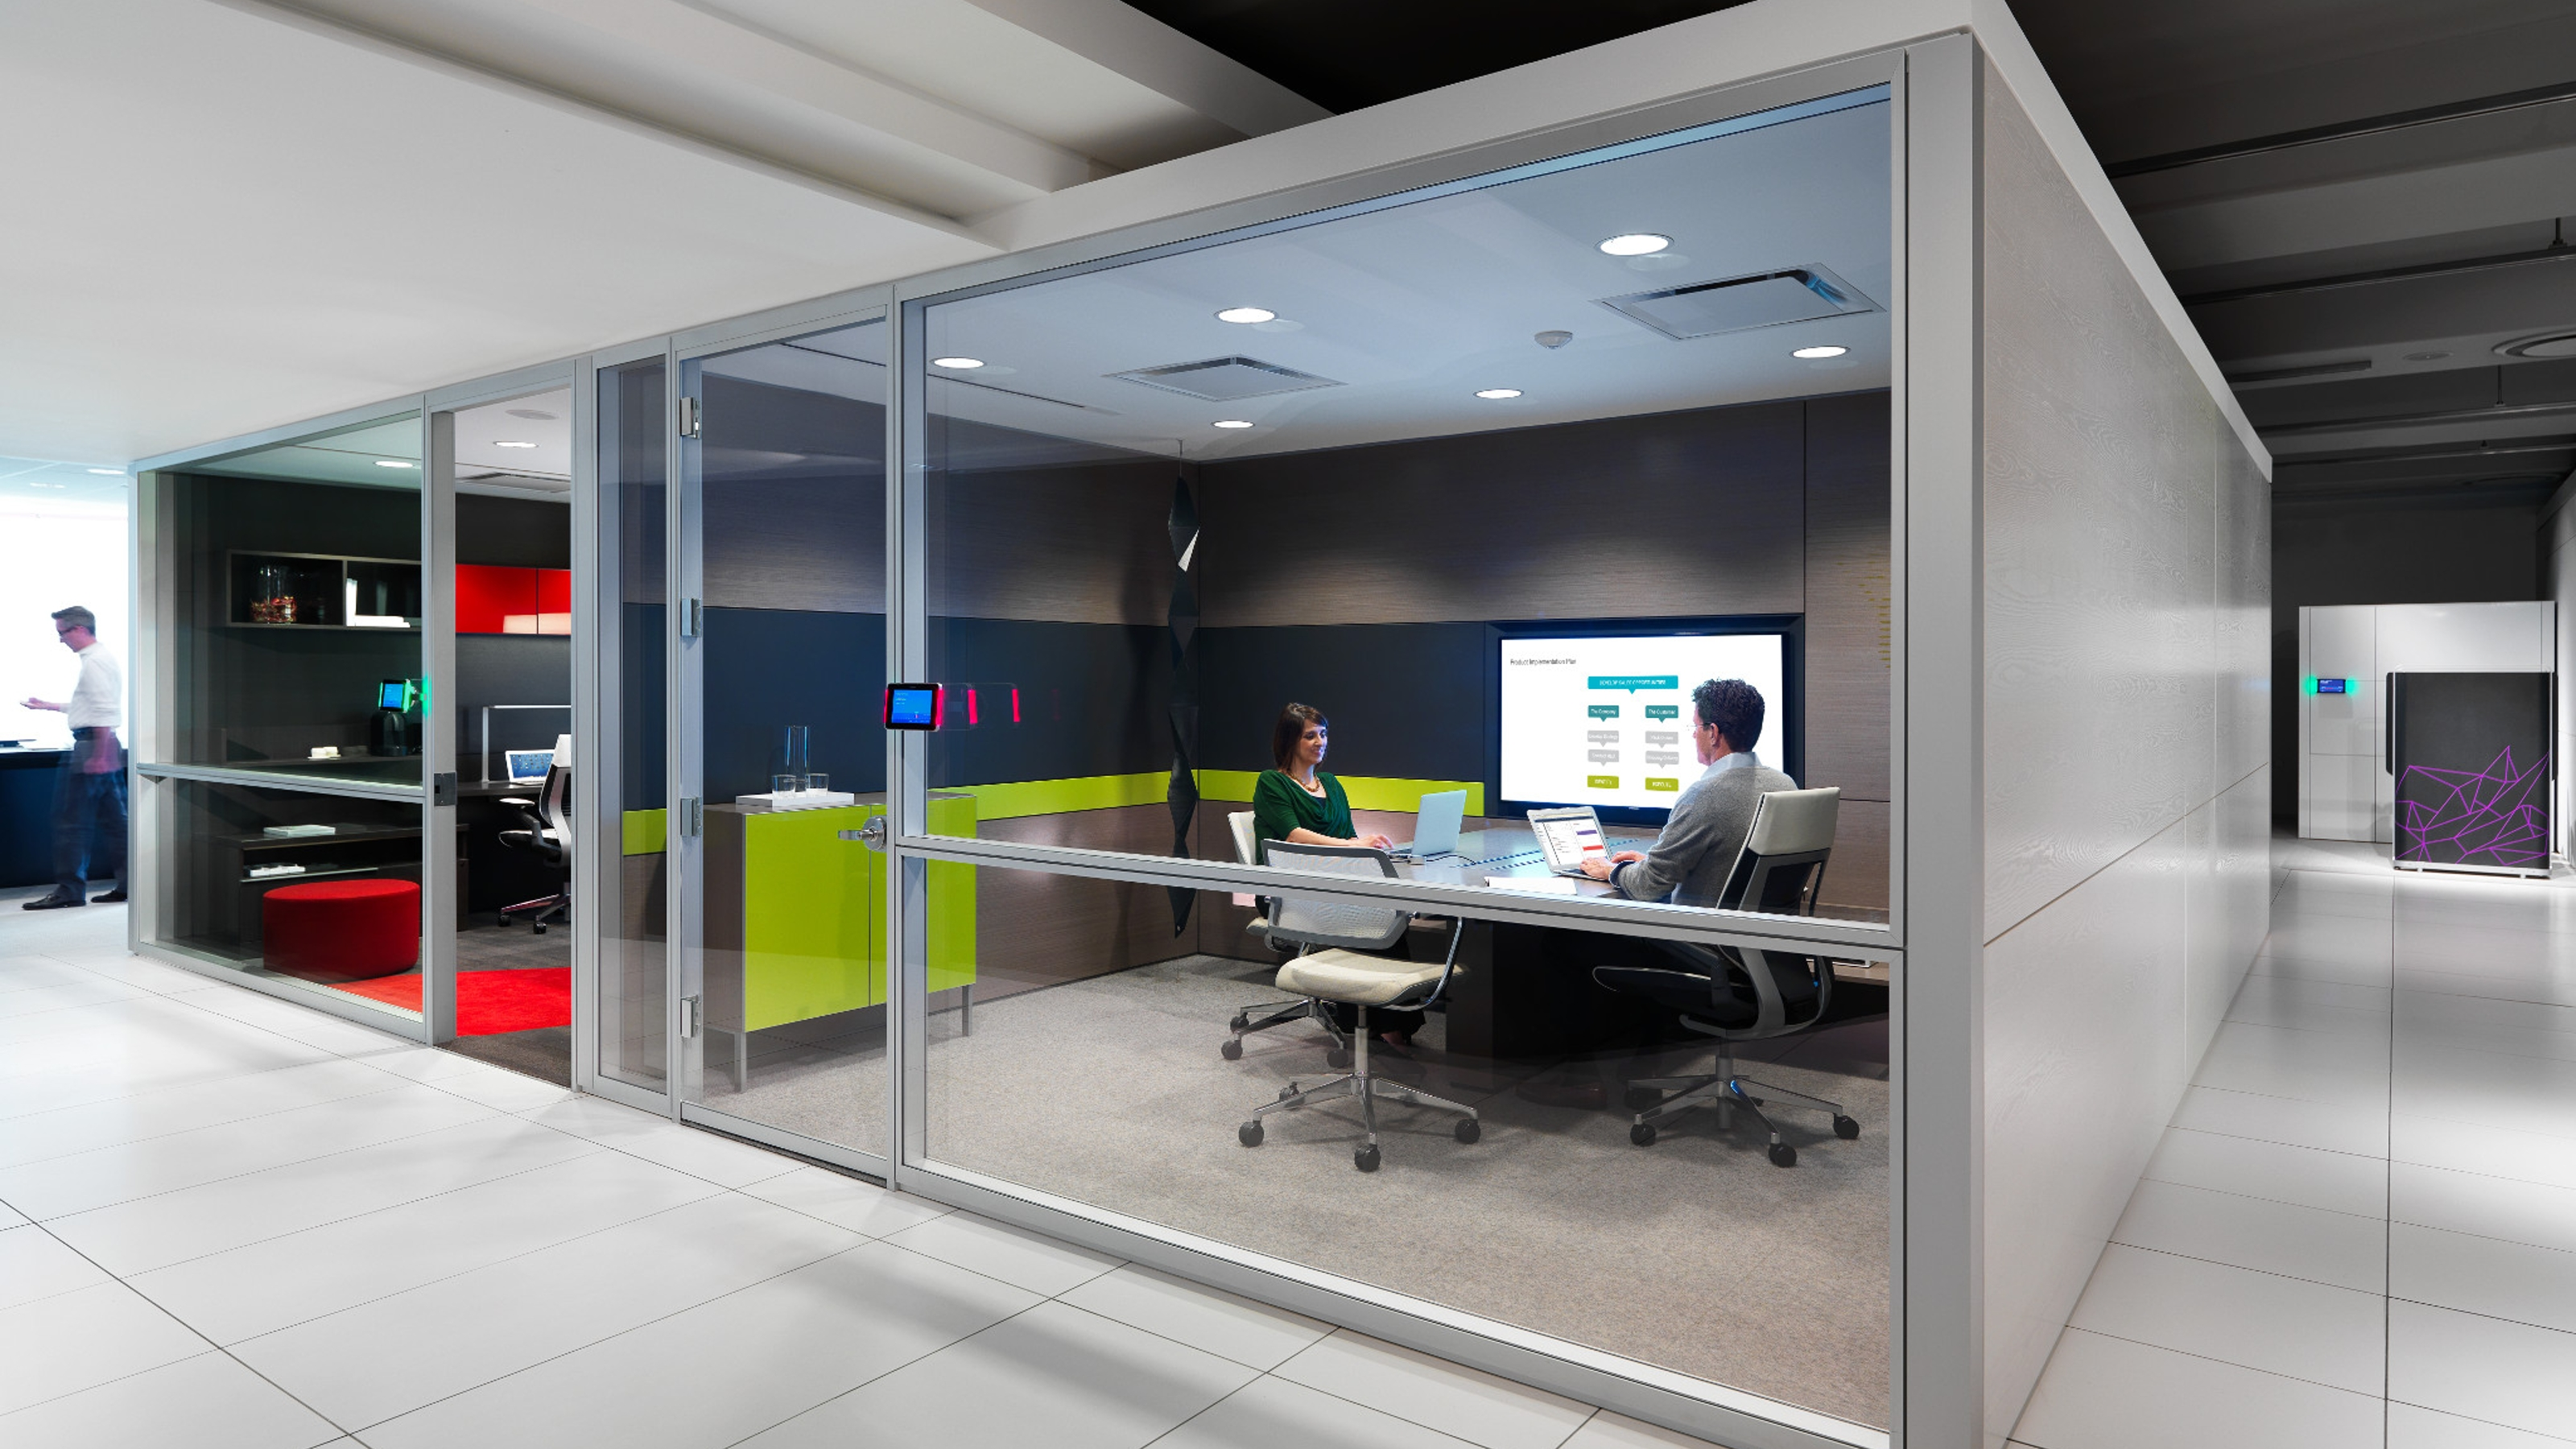 V.I.A. installation with maximum acoustical privacy. The meeting rooms can be easily reconfigured with little or no disruption and have technology seamlessly integrated into the room.